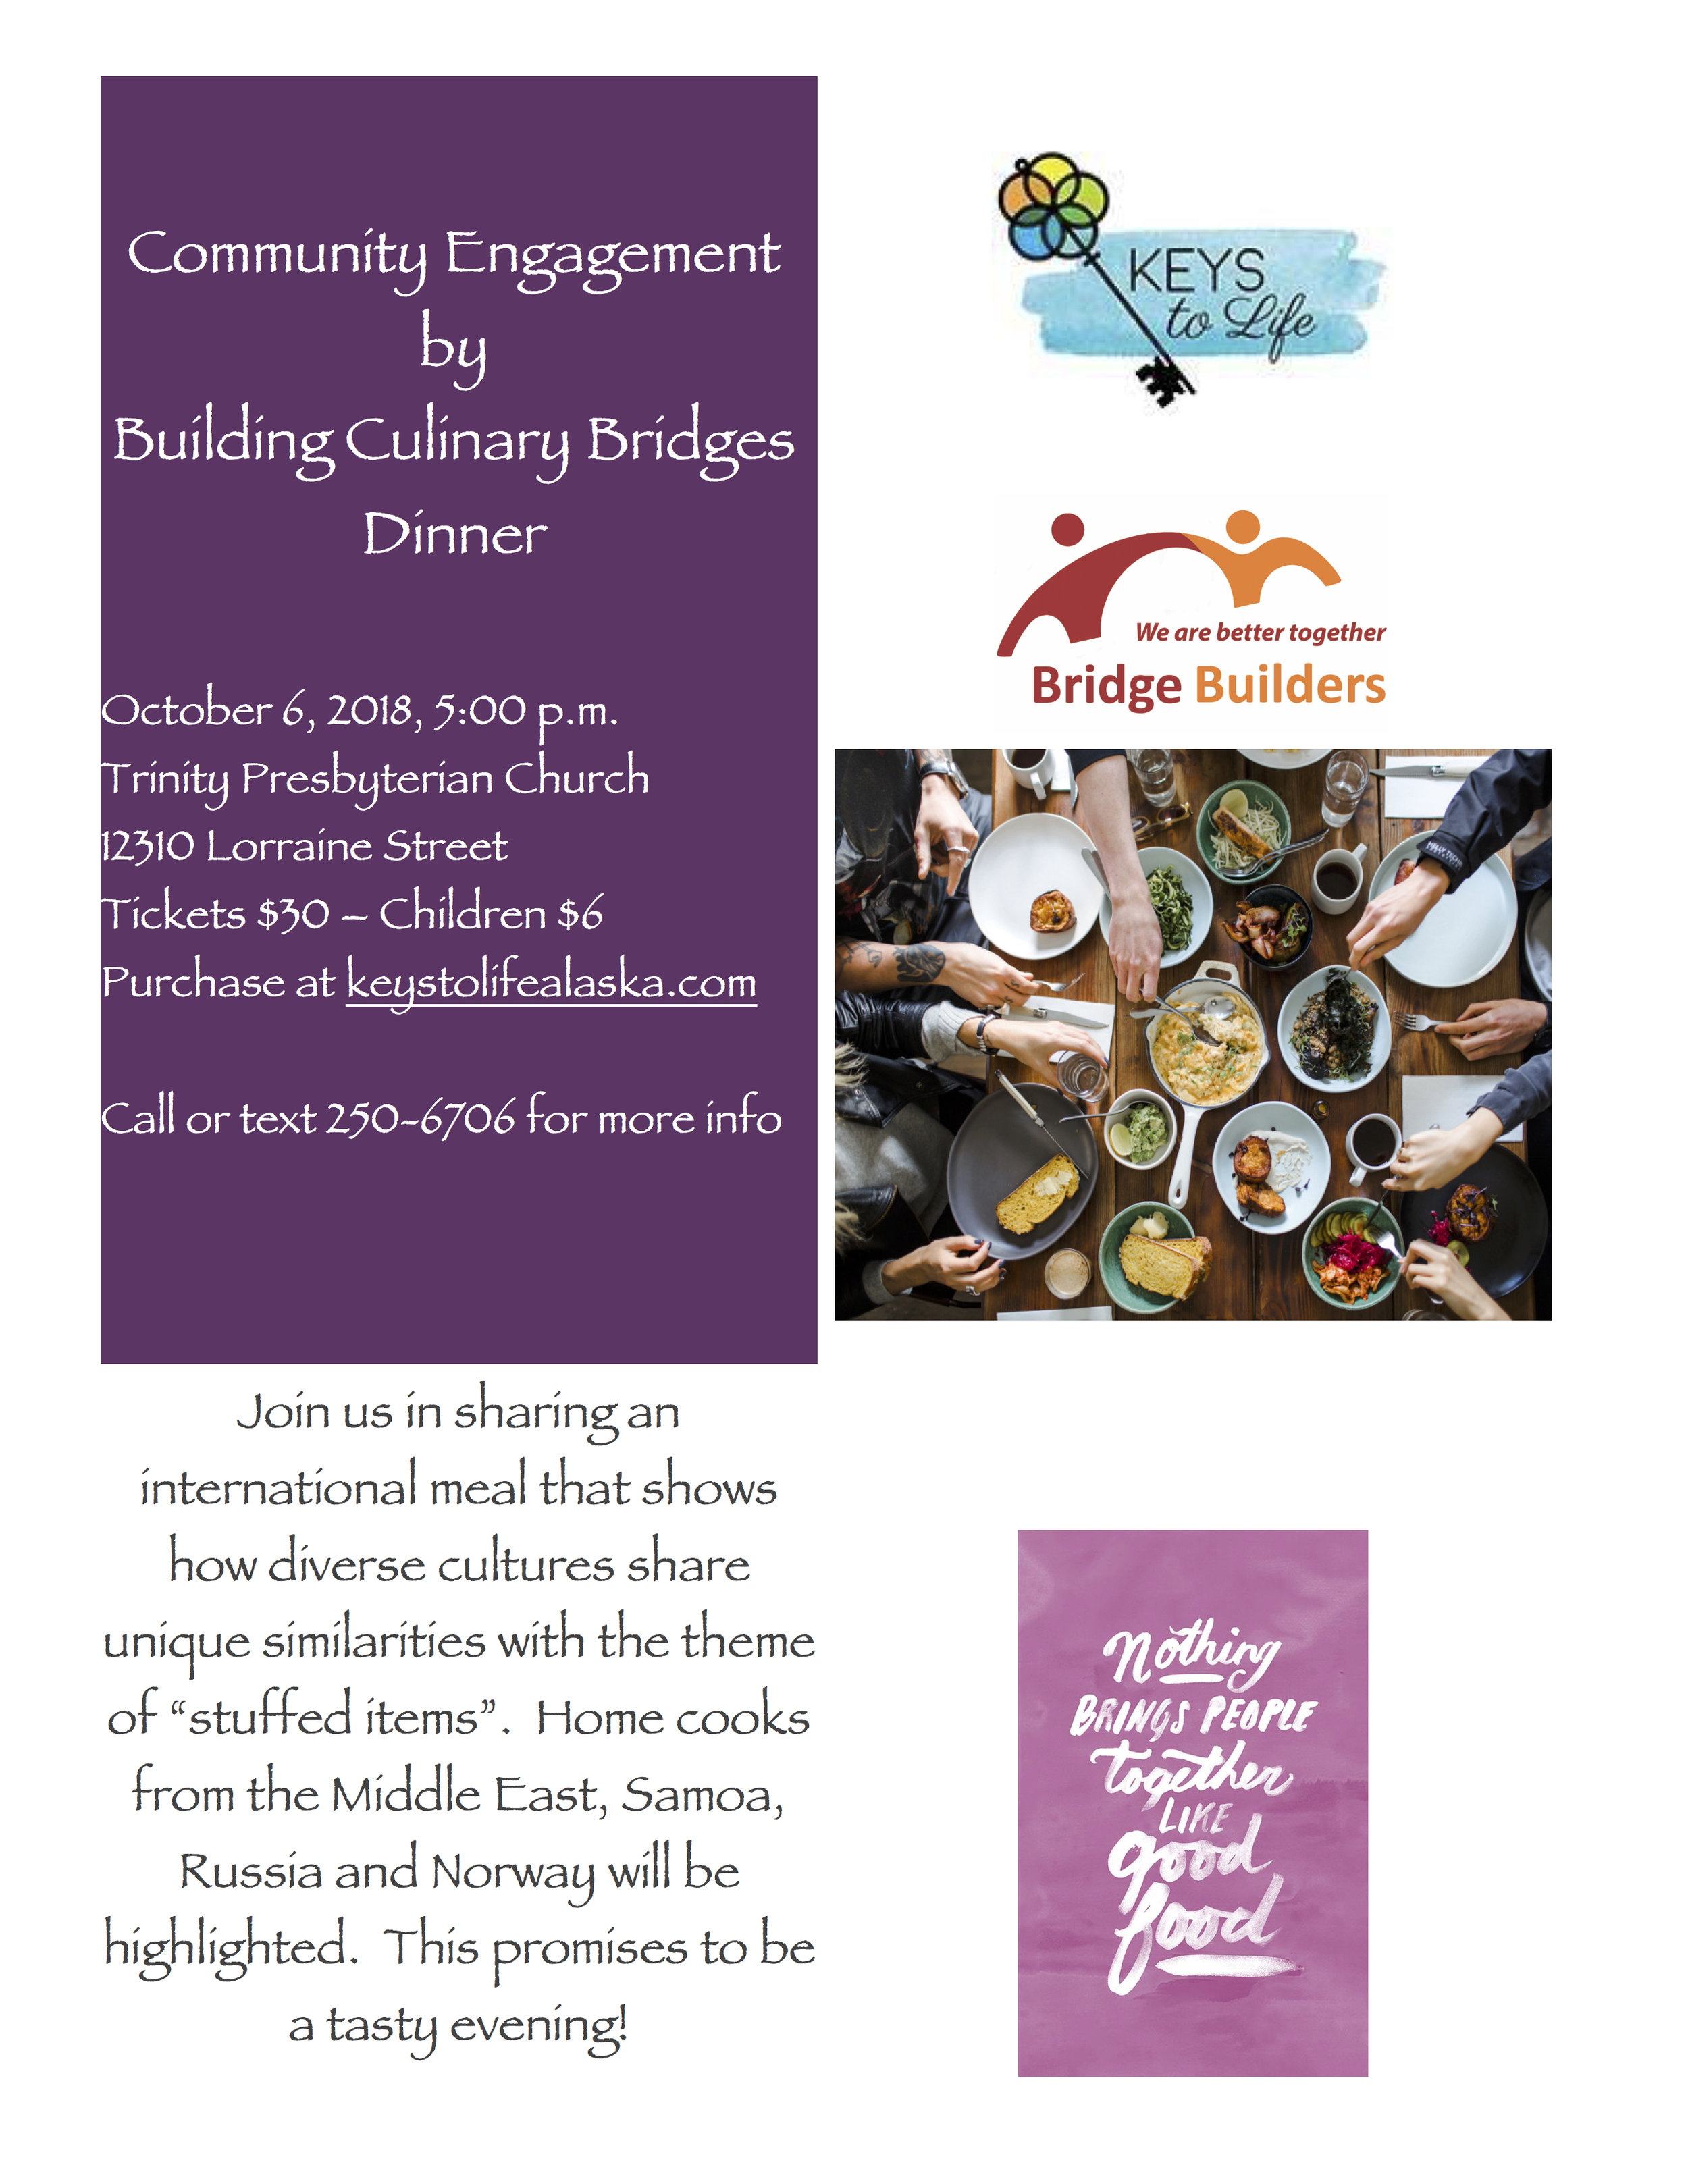 2 Community Engagement by Building Culinary Bridges Dinner.jpg